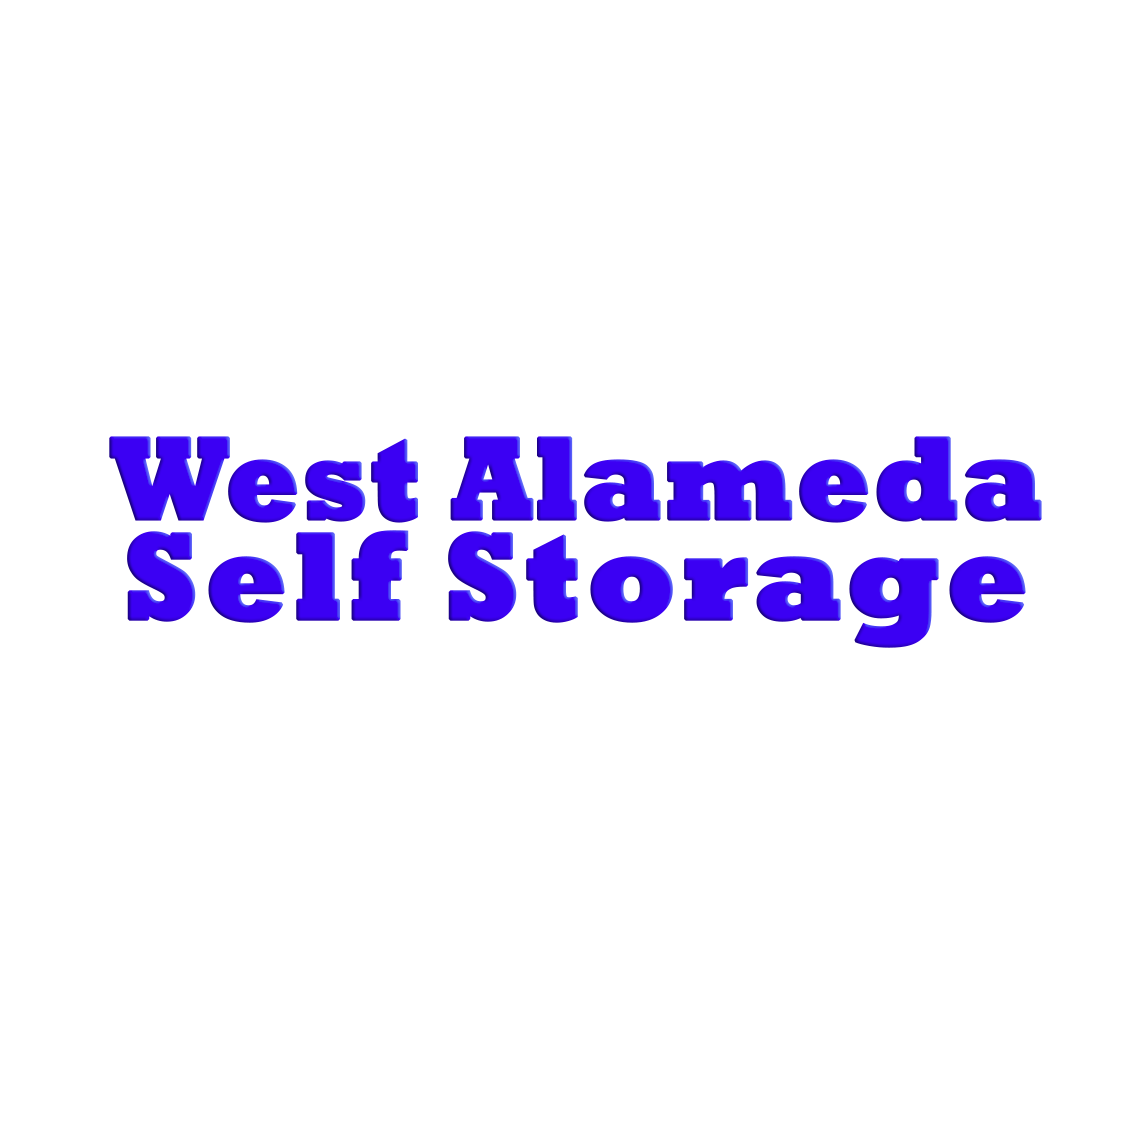 West Alameda Self Storage